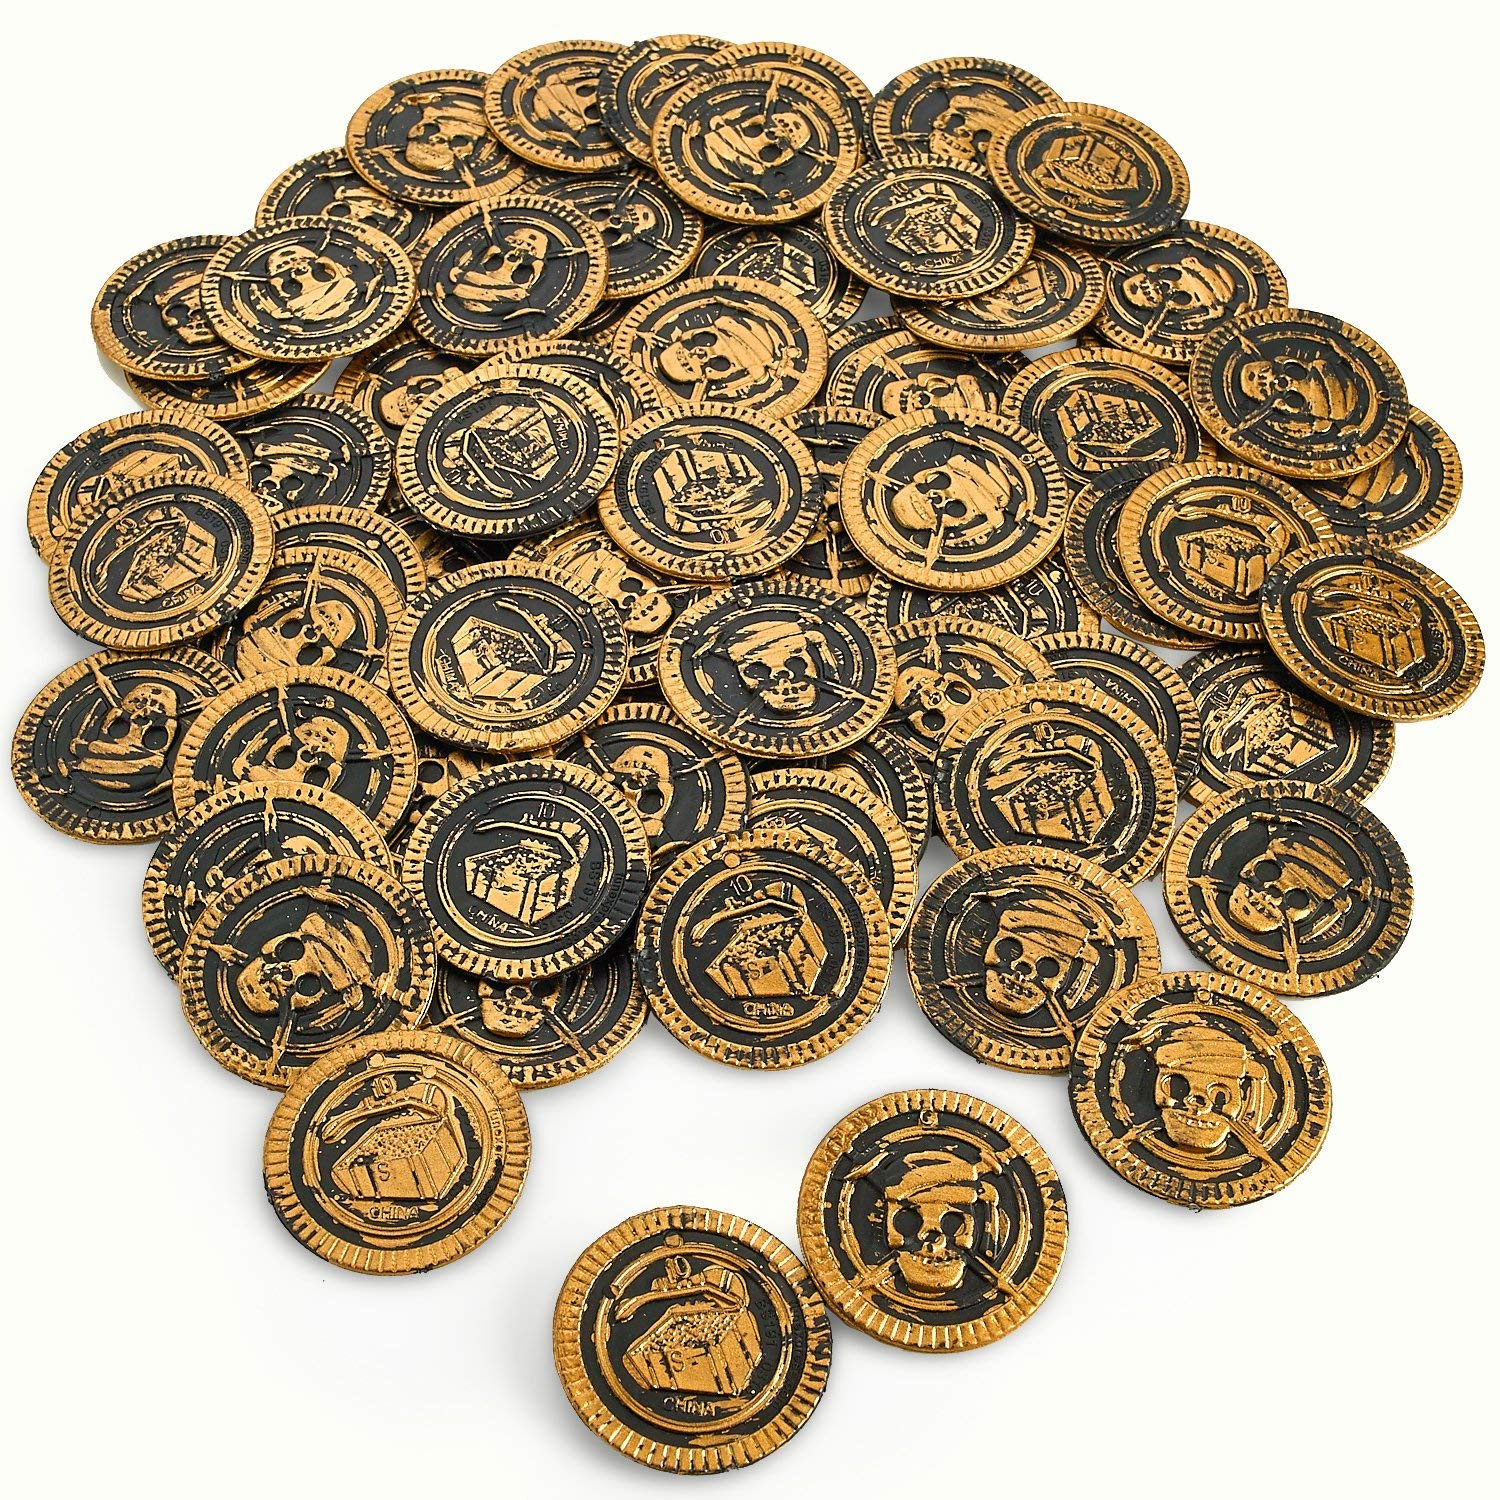 Pirate Coins Pirates Treasure Coins - 72 Pack Plastic, Each